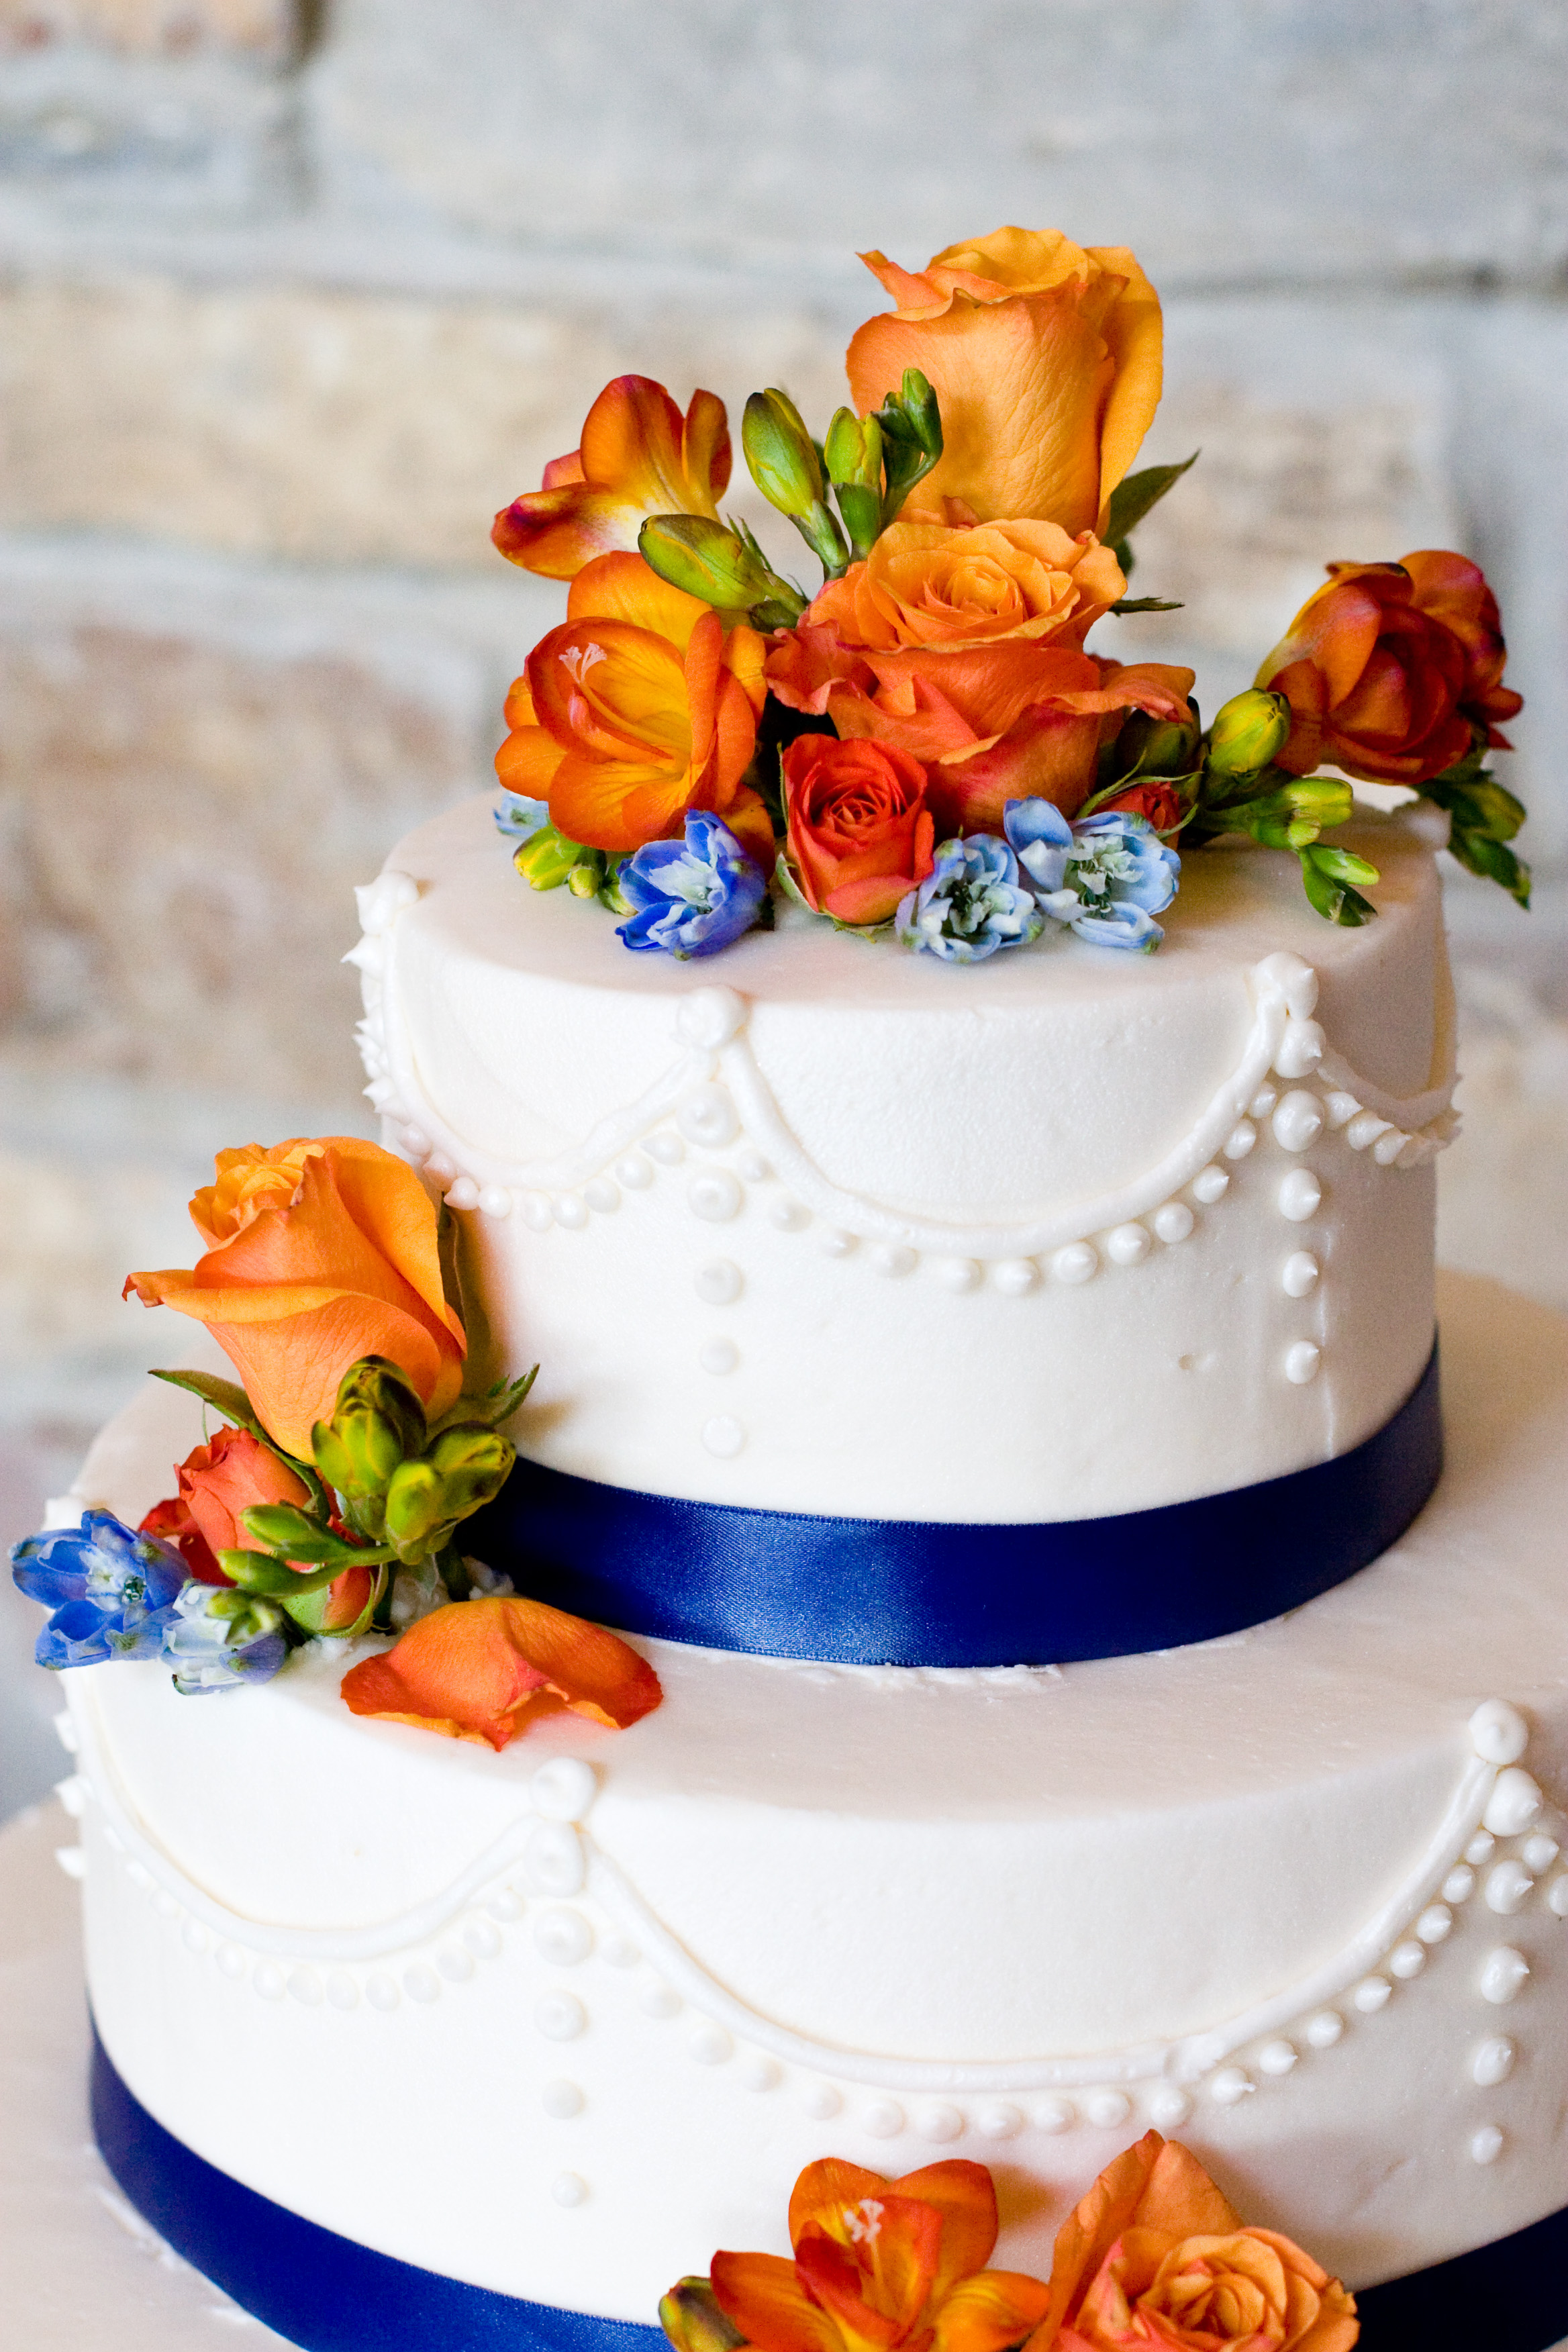 Modern wedding cakes for the holiday: Buttercream wedding cakes mn